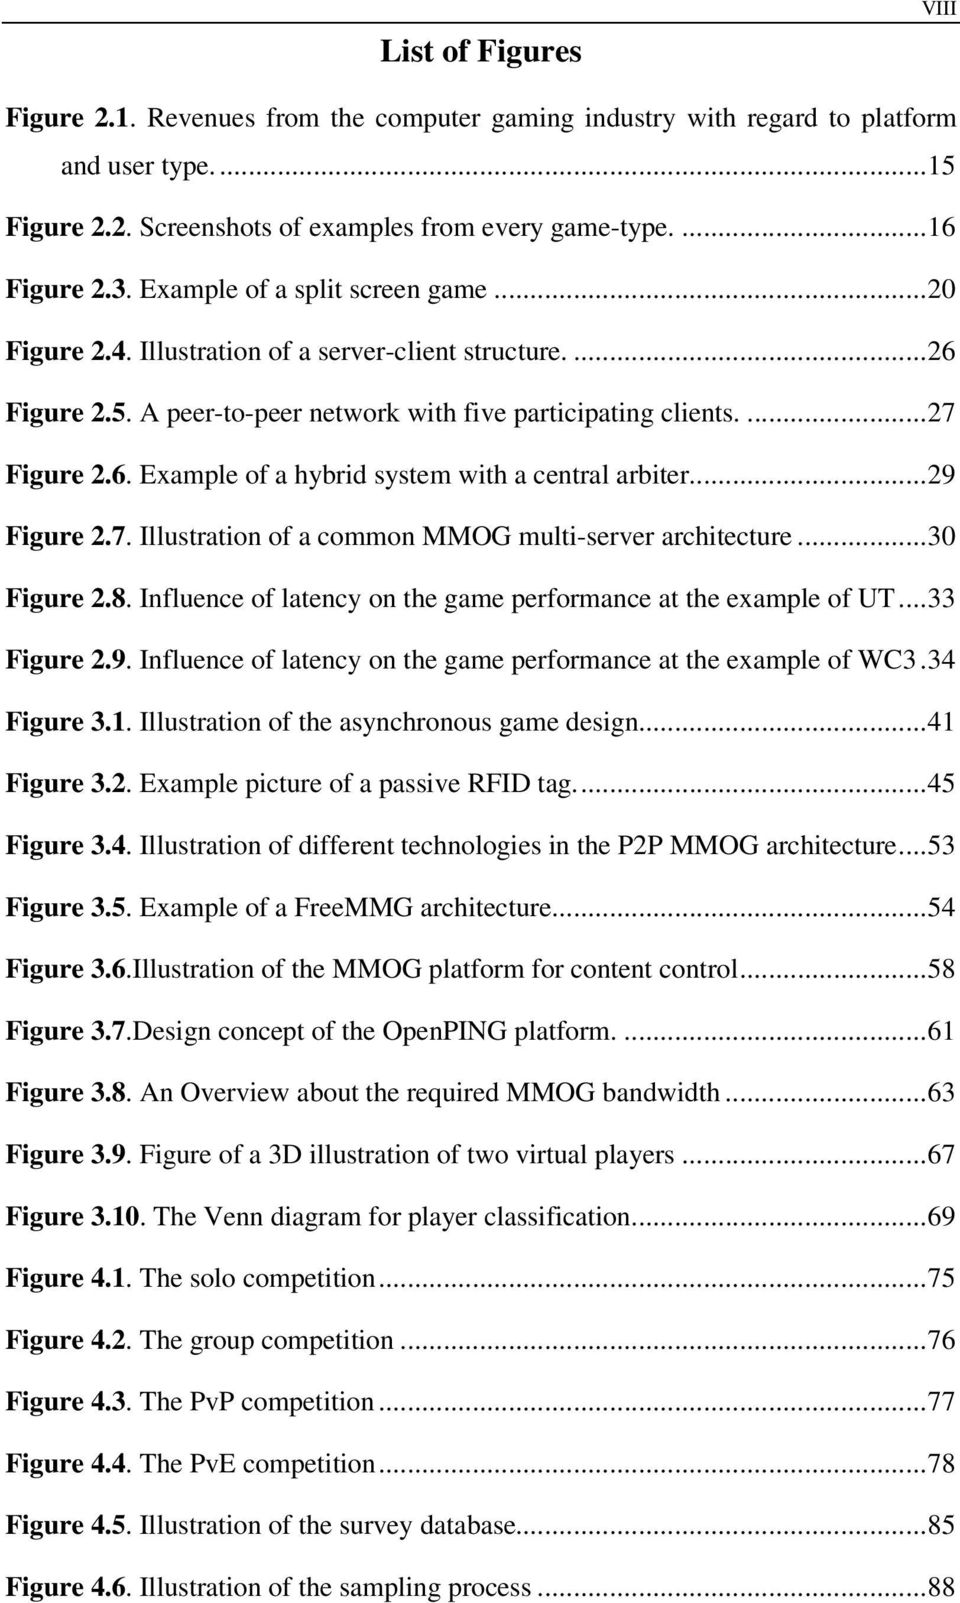 ..29 Figure 2.7. Illustration of a common MMOG multi-server architecture...30 Figure 2.8. Influence of latency on the game performance at the example of UT...33 Figure 2.9. Influence of latency on the game performance at the example of WC3.